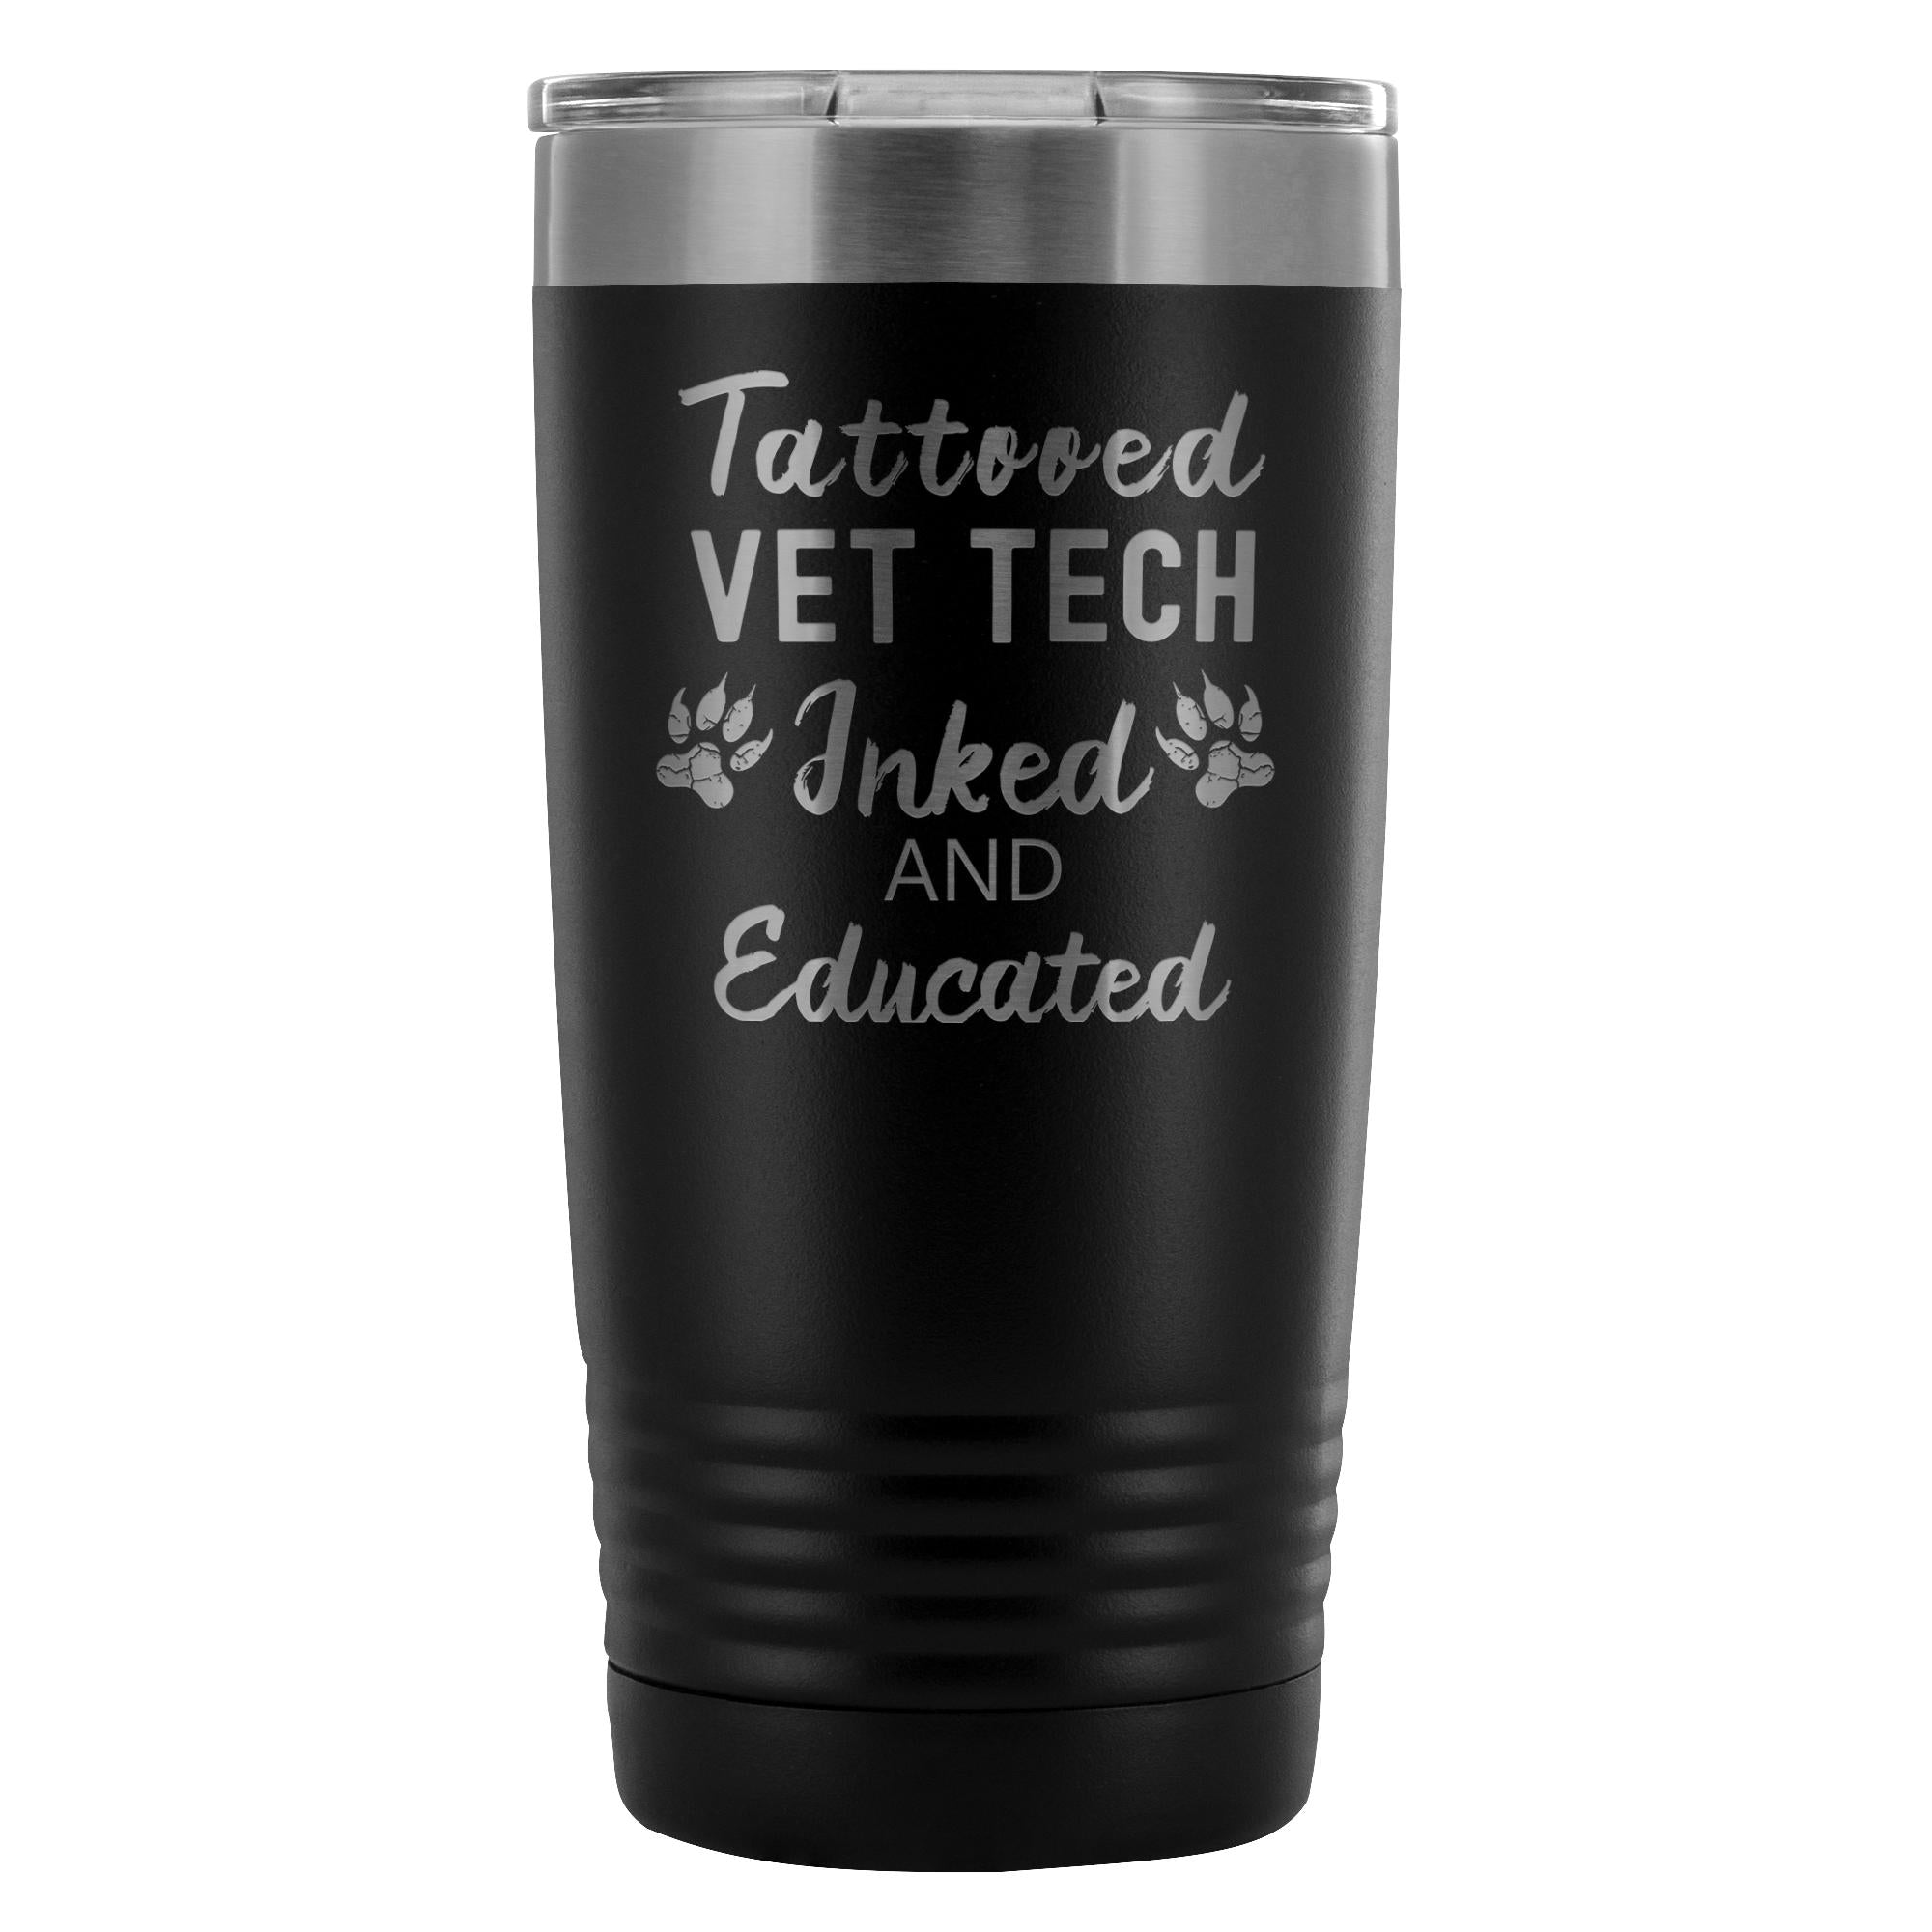 Vet Tech- Tattooed, Inked and Educated 20oz Vacuum Tumbler-Tumblers-I love Veterinary